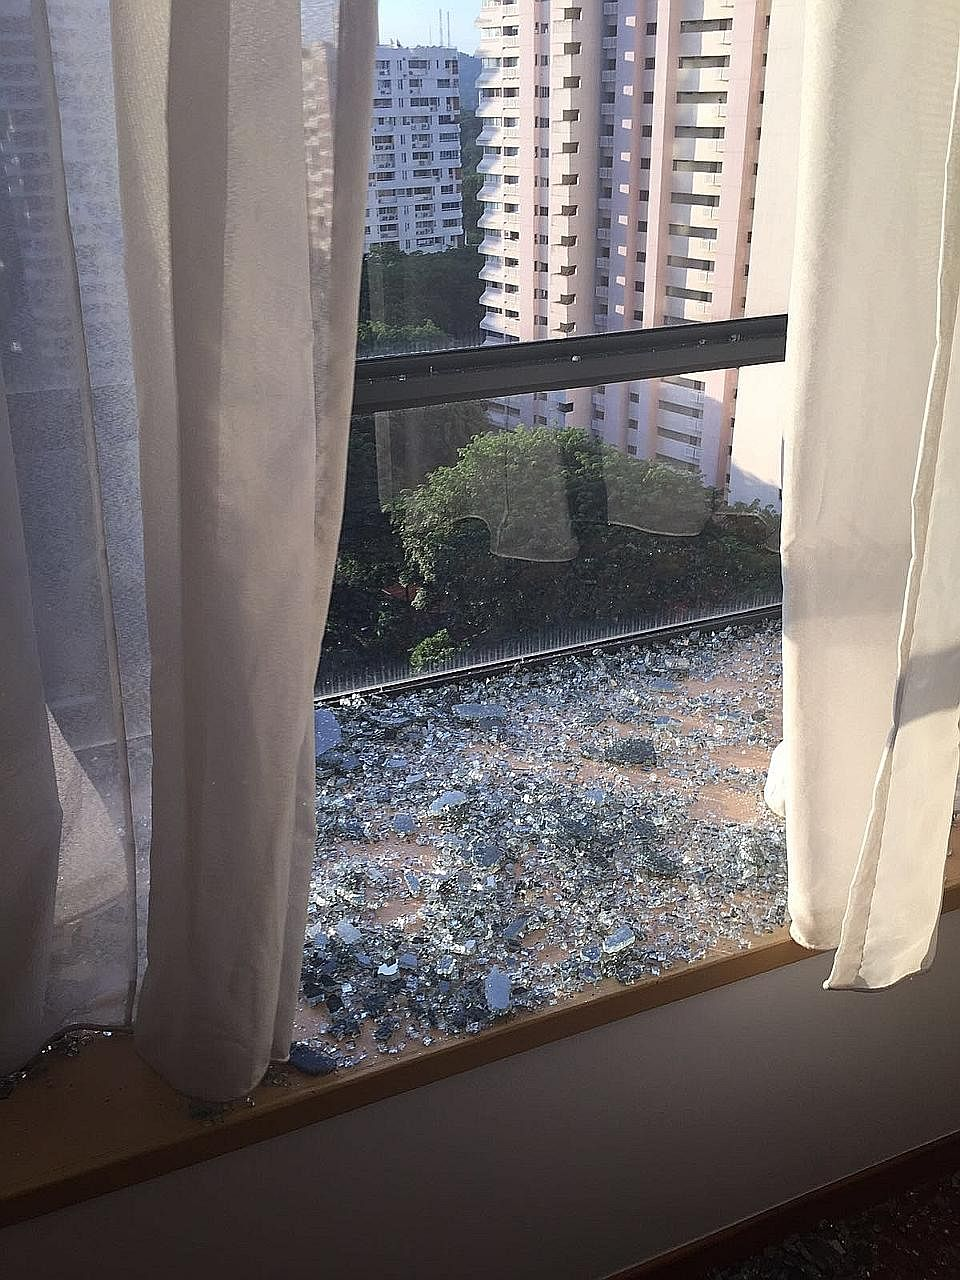 Find Out Why A Window At This Condo Spontaneously